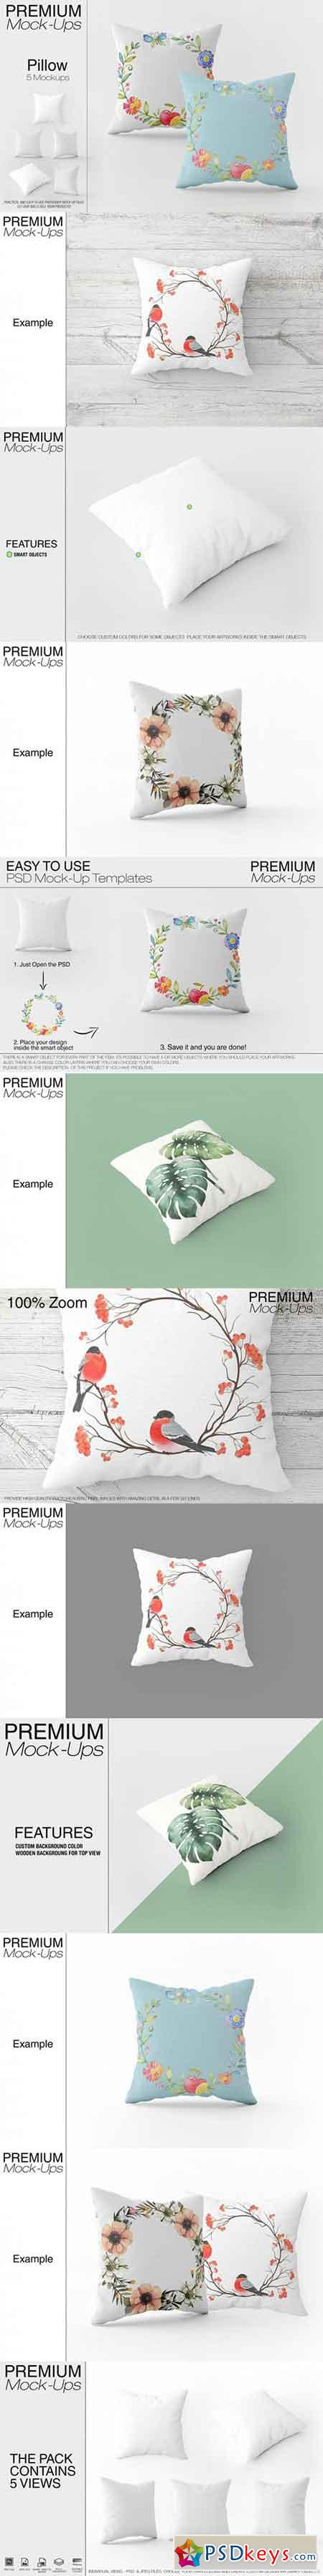 Square Pillow Mockup Pack 3451120